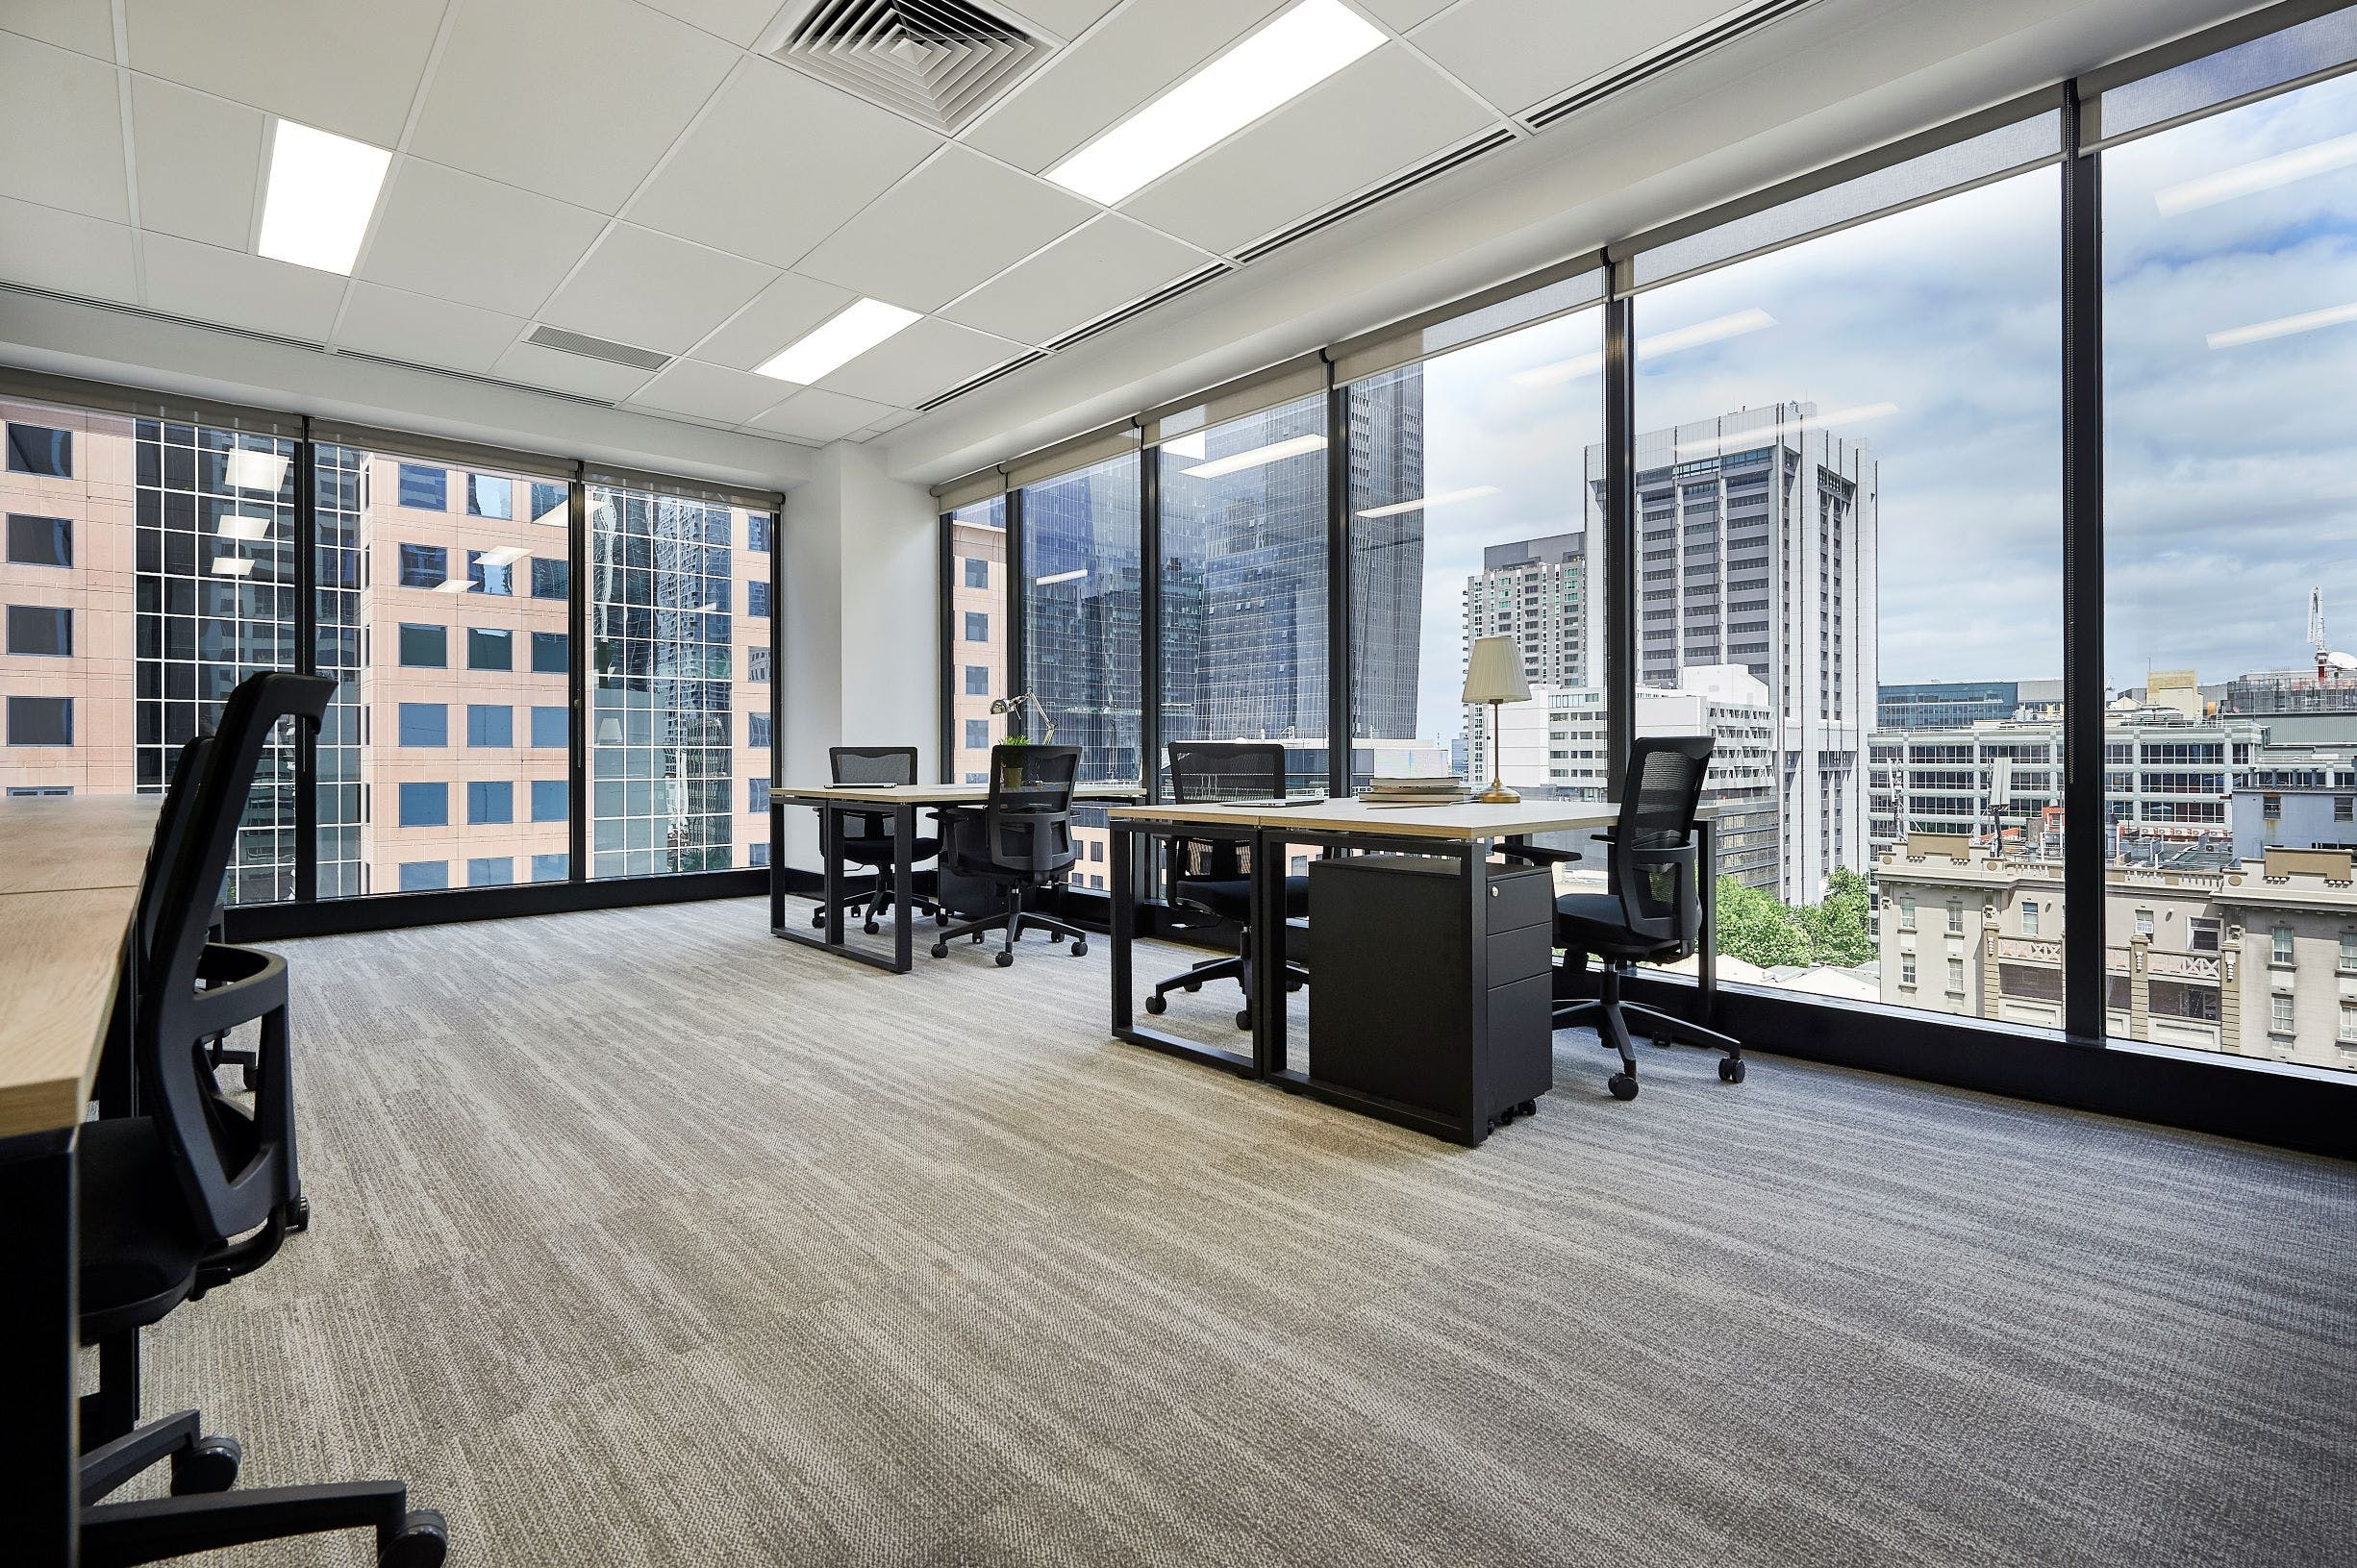 Suite 701, private office at Altitude CoWork, image 7